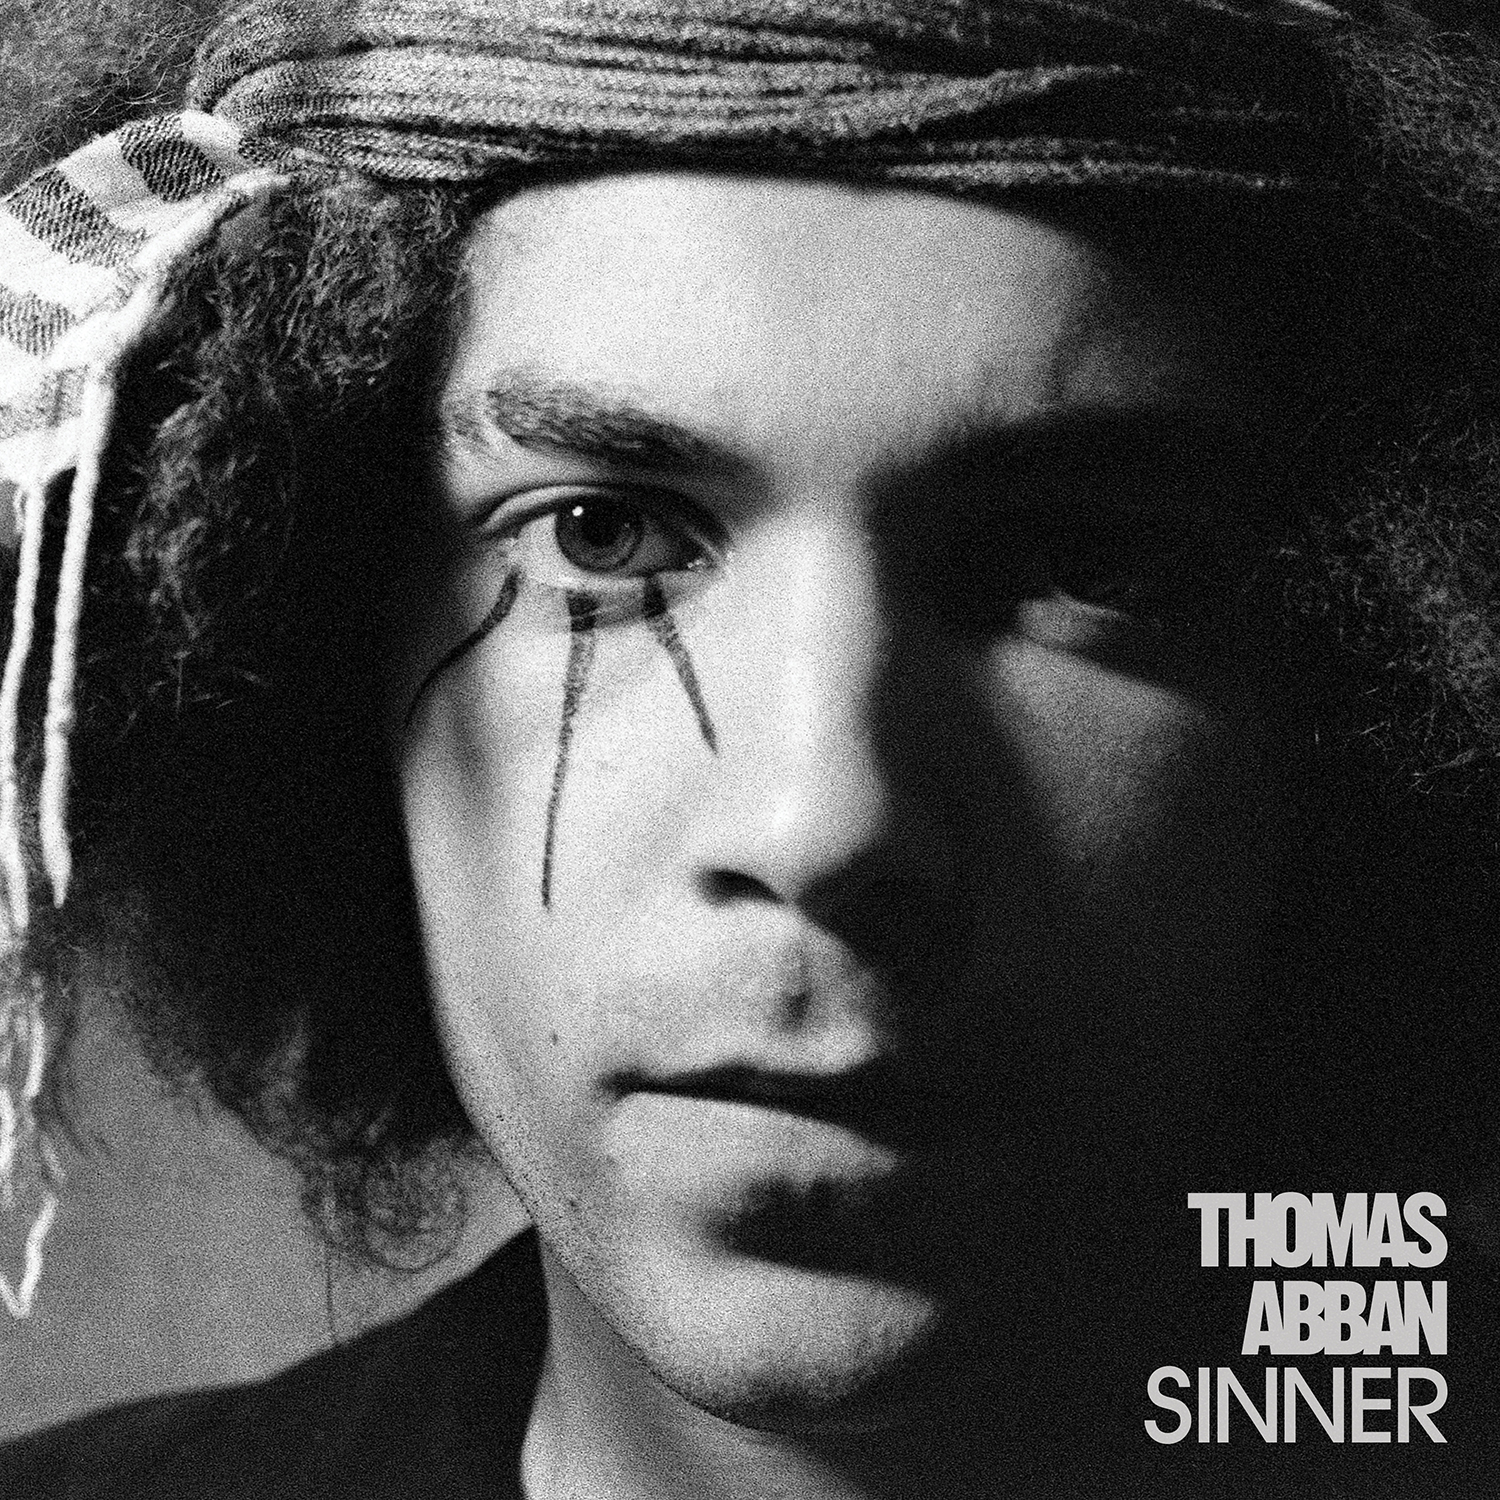 Thomas-Abban_Cover_Sinner_10x10_300dpi_RGB